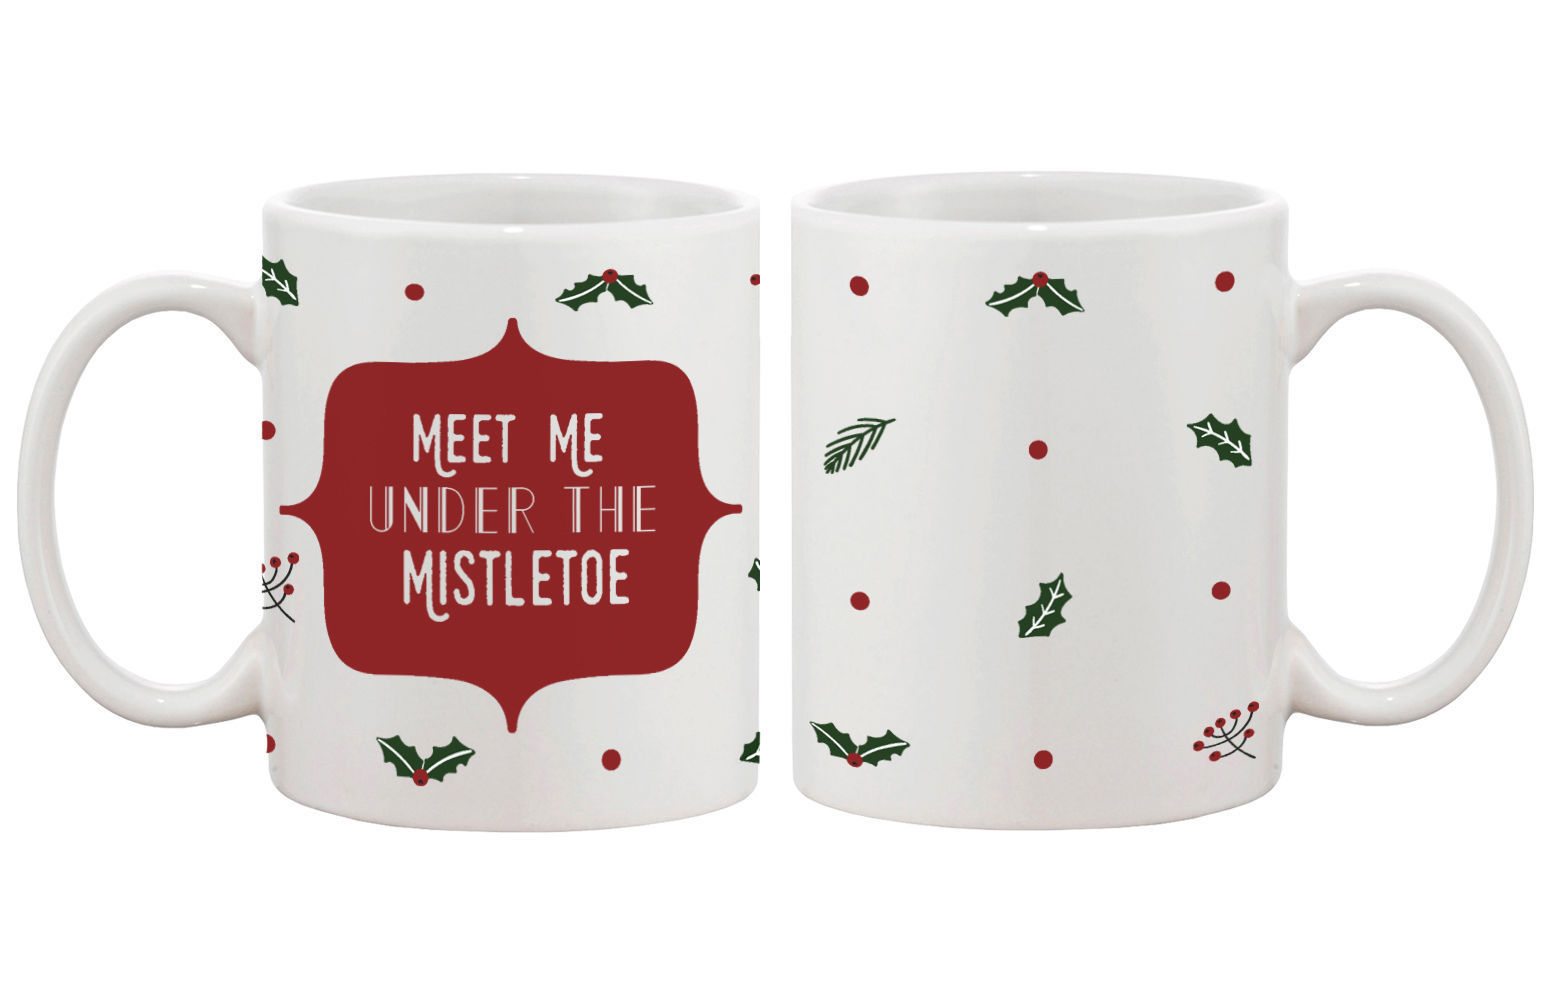 Meet Me Under The Mistletoe Pattern Coffee Mug for Holidays Christmas Gift Idea